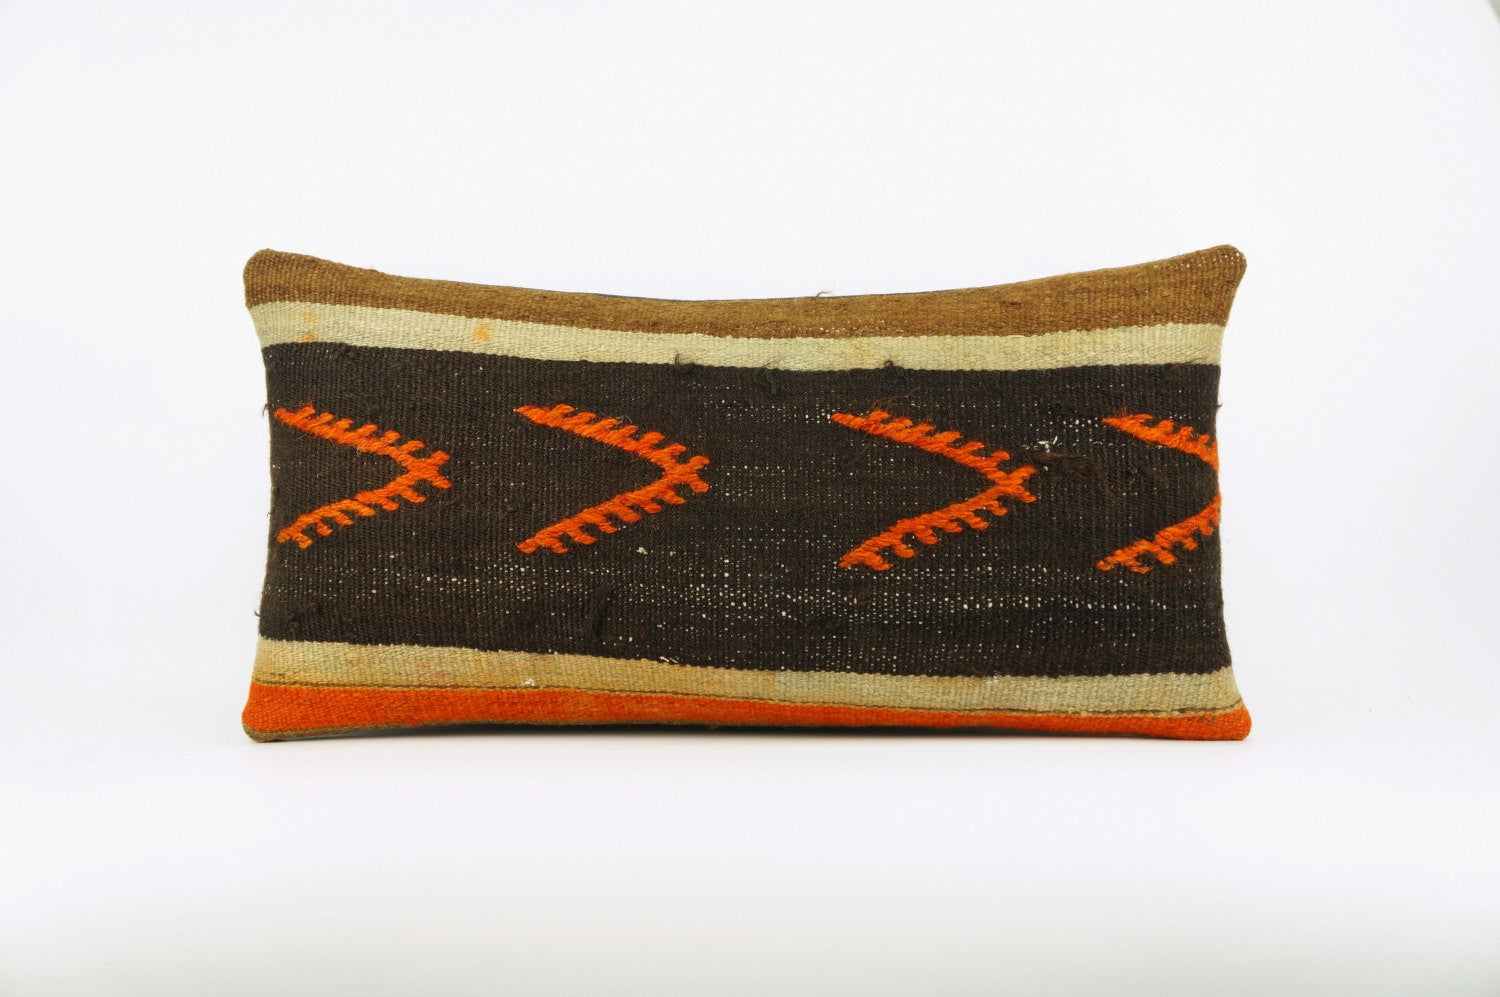 12x24 Ethnic decorative pillow cover , Bohemian pillow case, Modern home decor Geometric Multi colour handwoven pillow ,1641 - kilimpillowstore  - 1